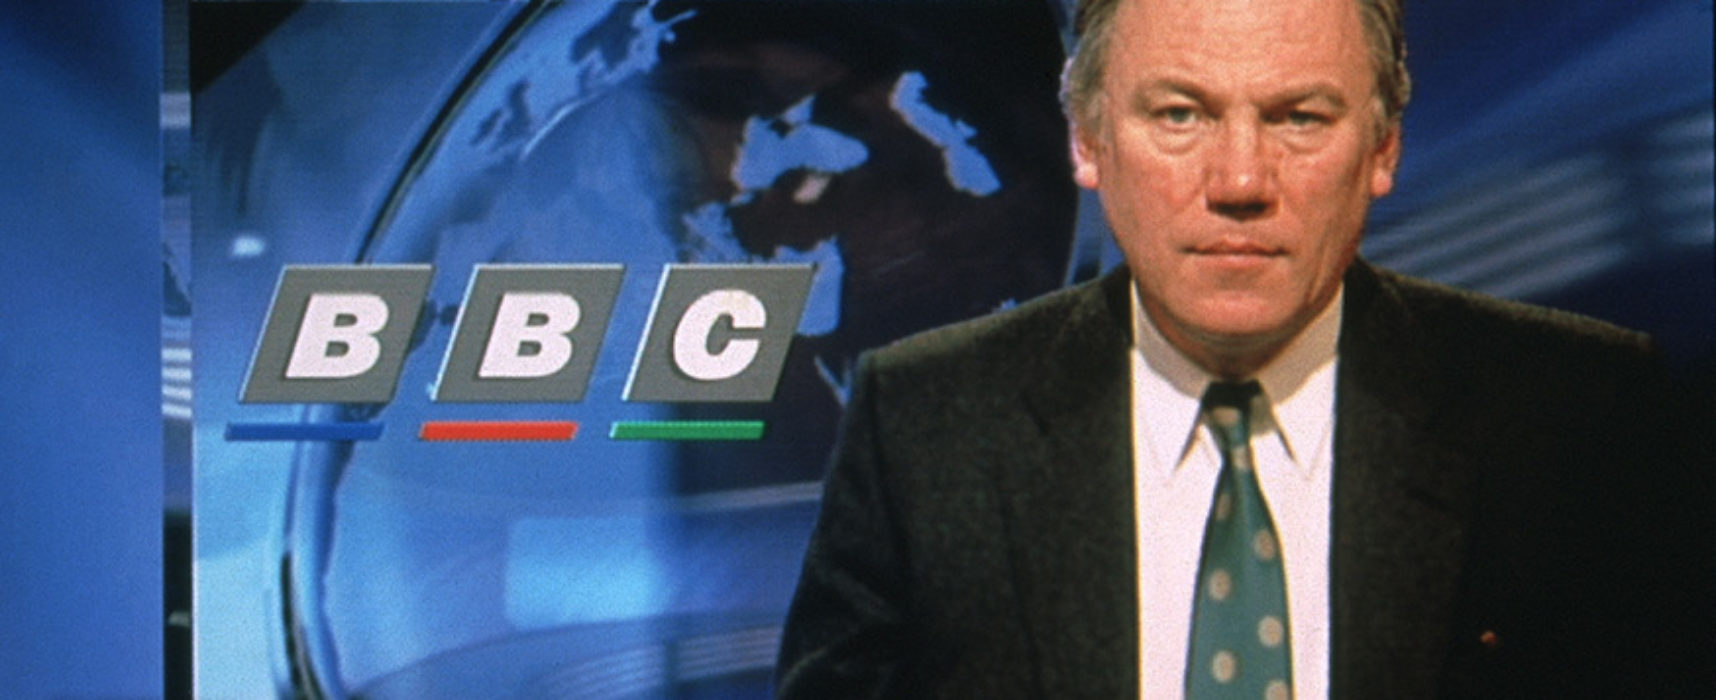 Peter Sissons criticises the BBC